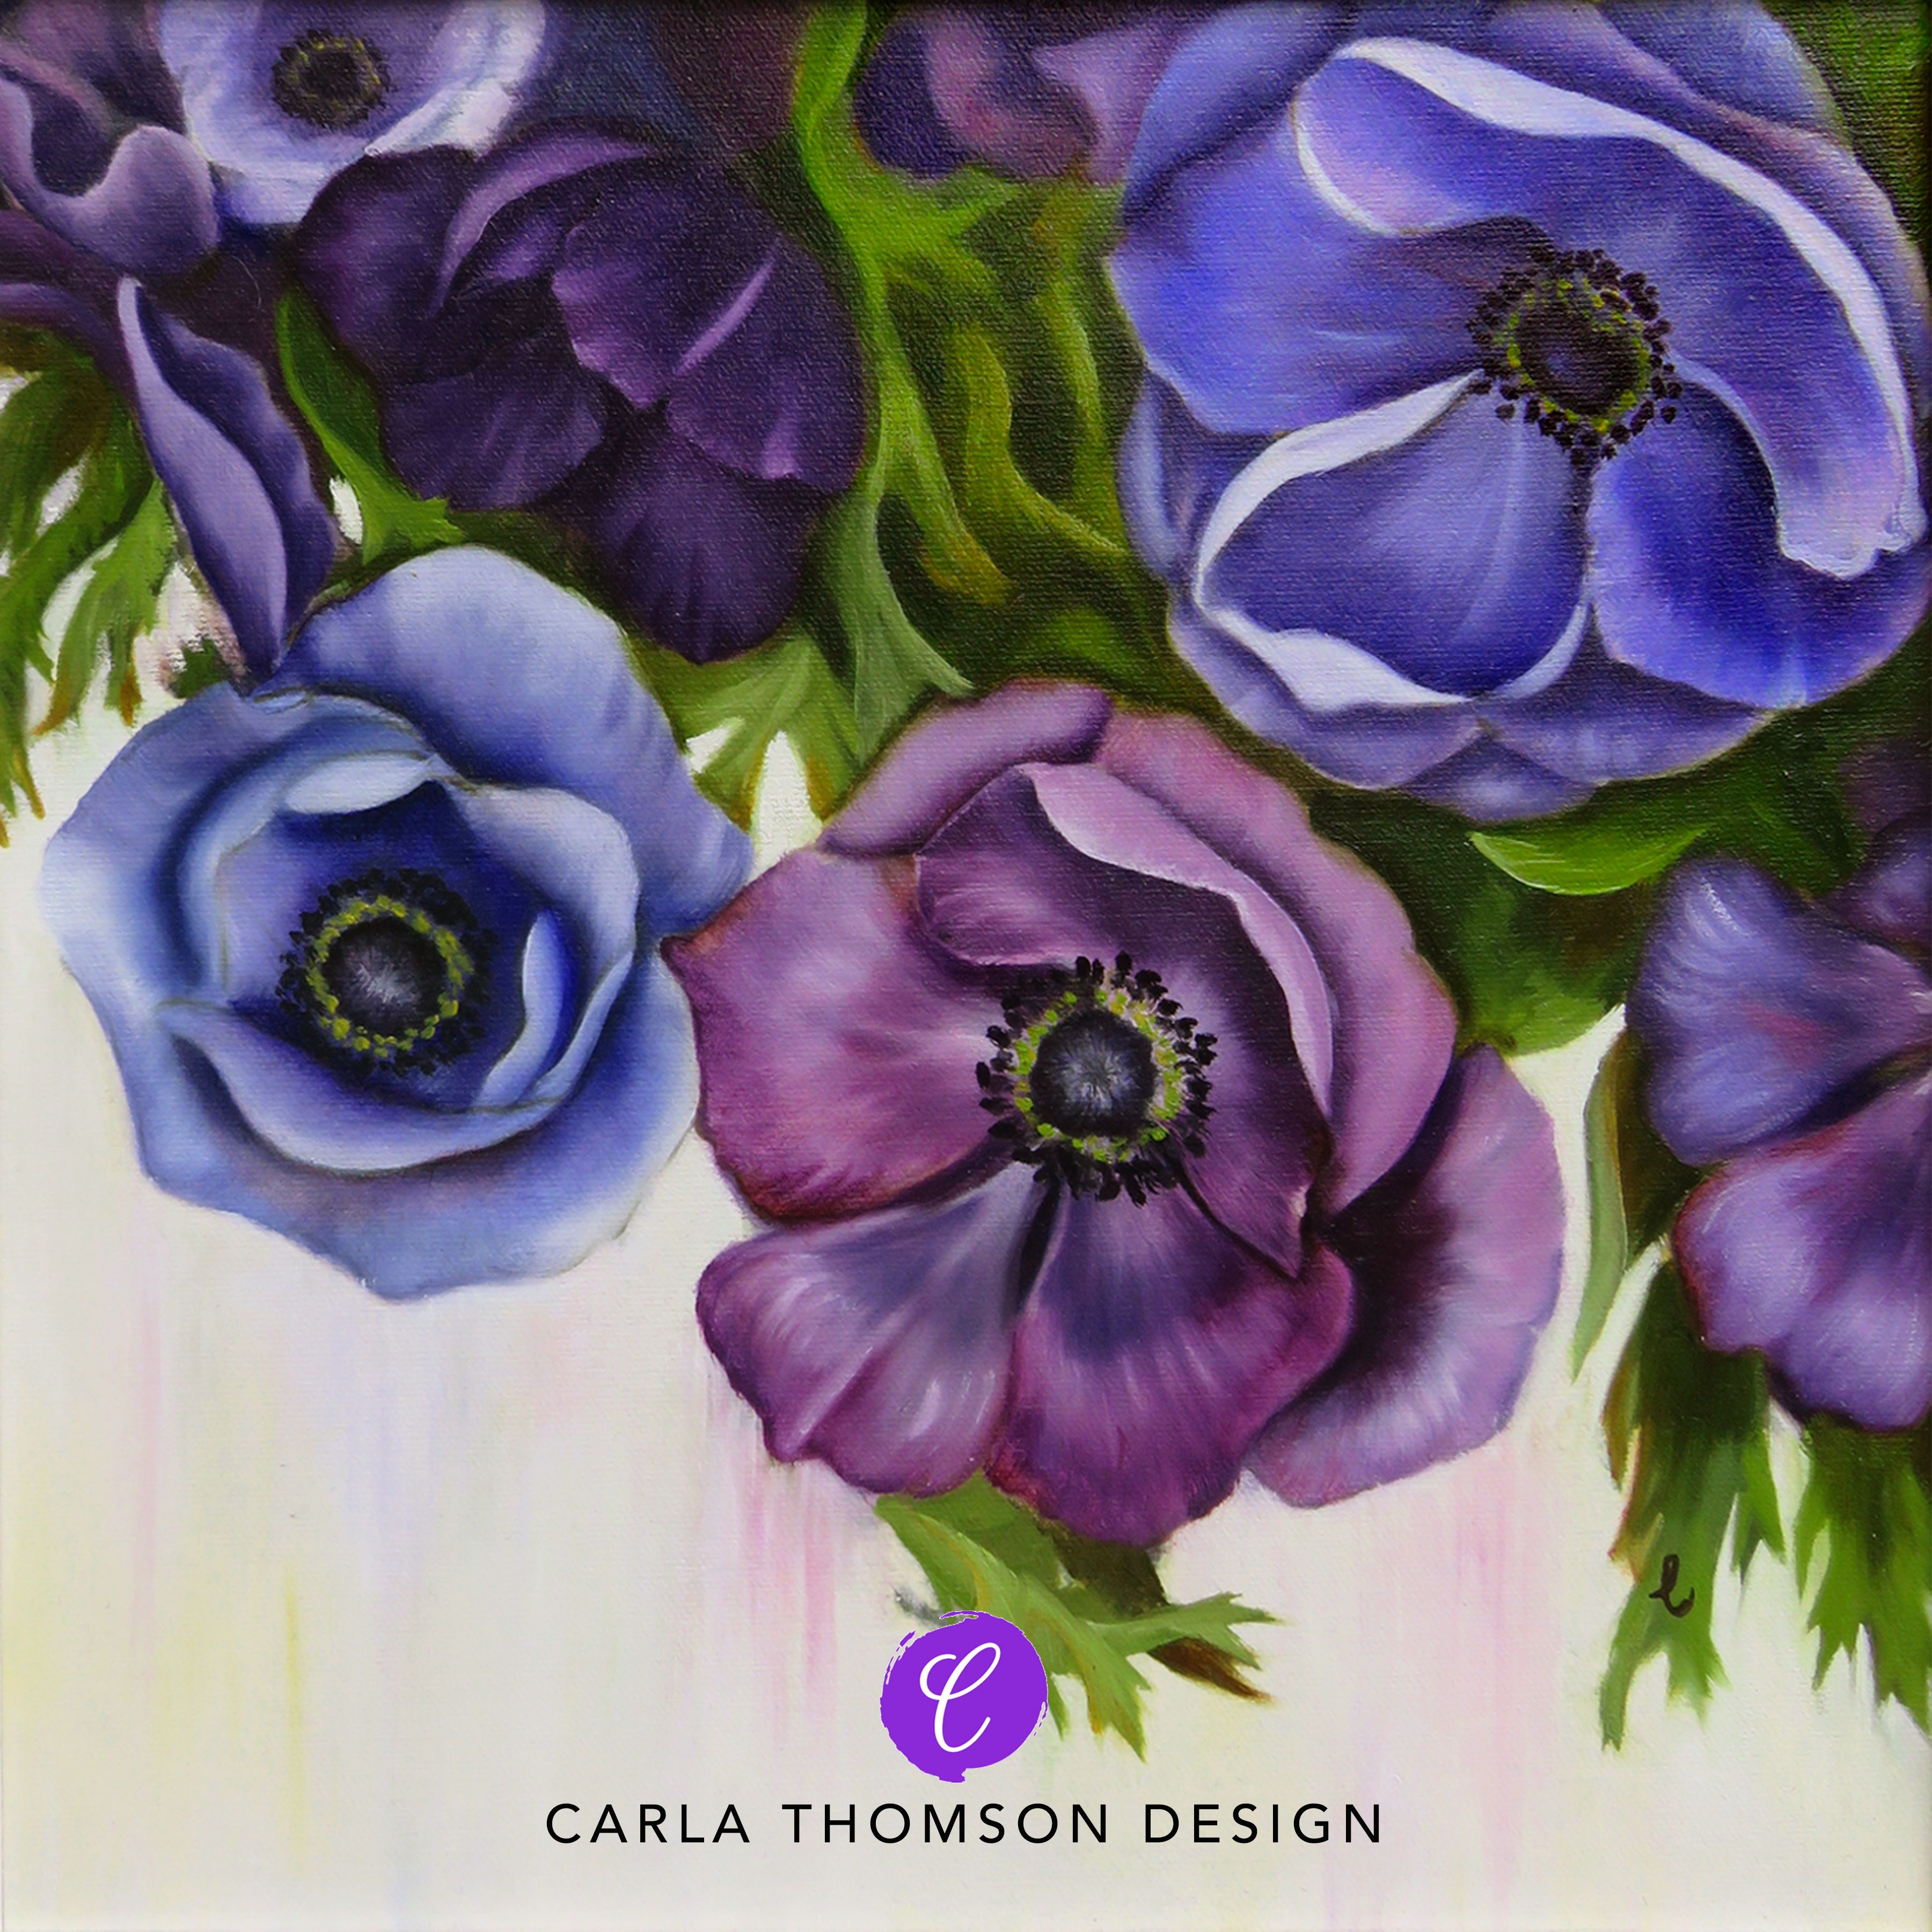 One In A Set Of Two Original Art Oil Painting Anemone Flowers In Blue Purple White And Green On Canvas Frame Floral Painting Art Painting Oil Flower Painting